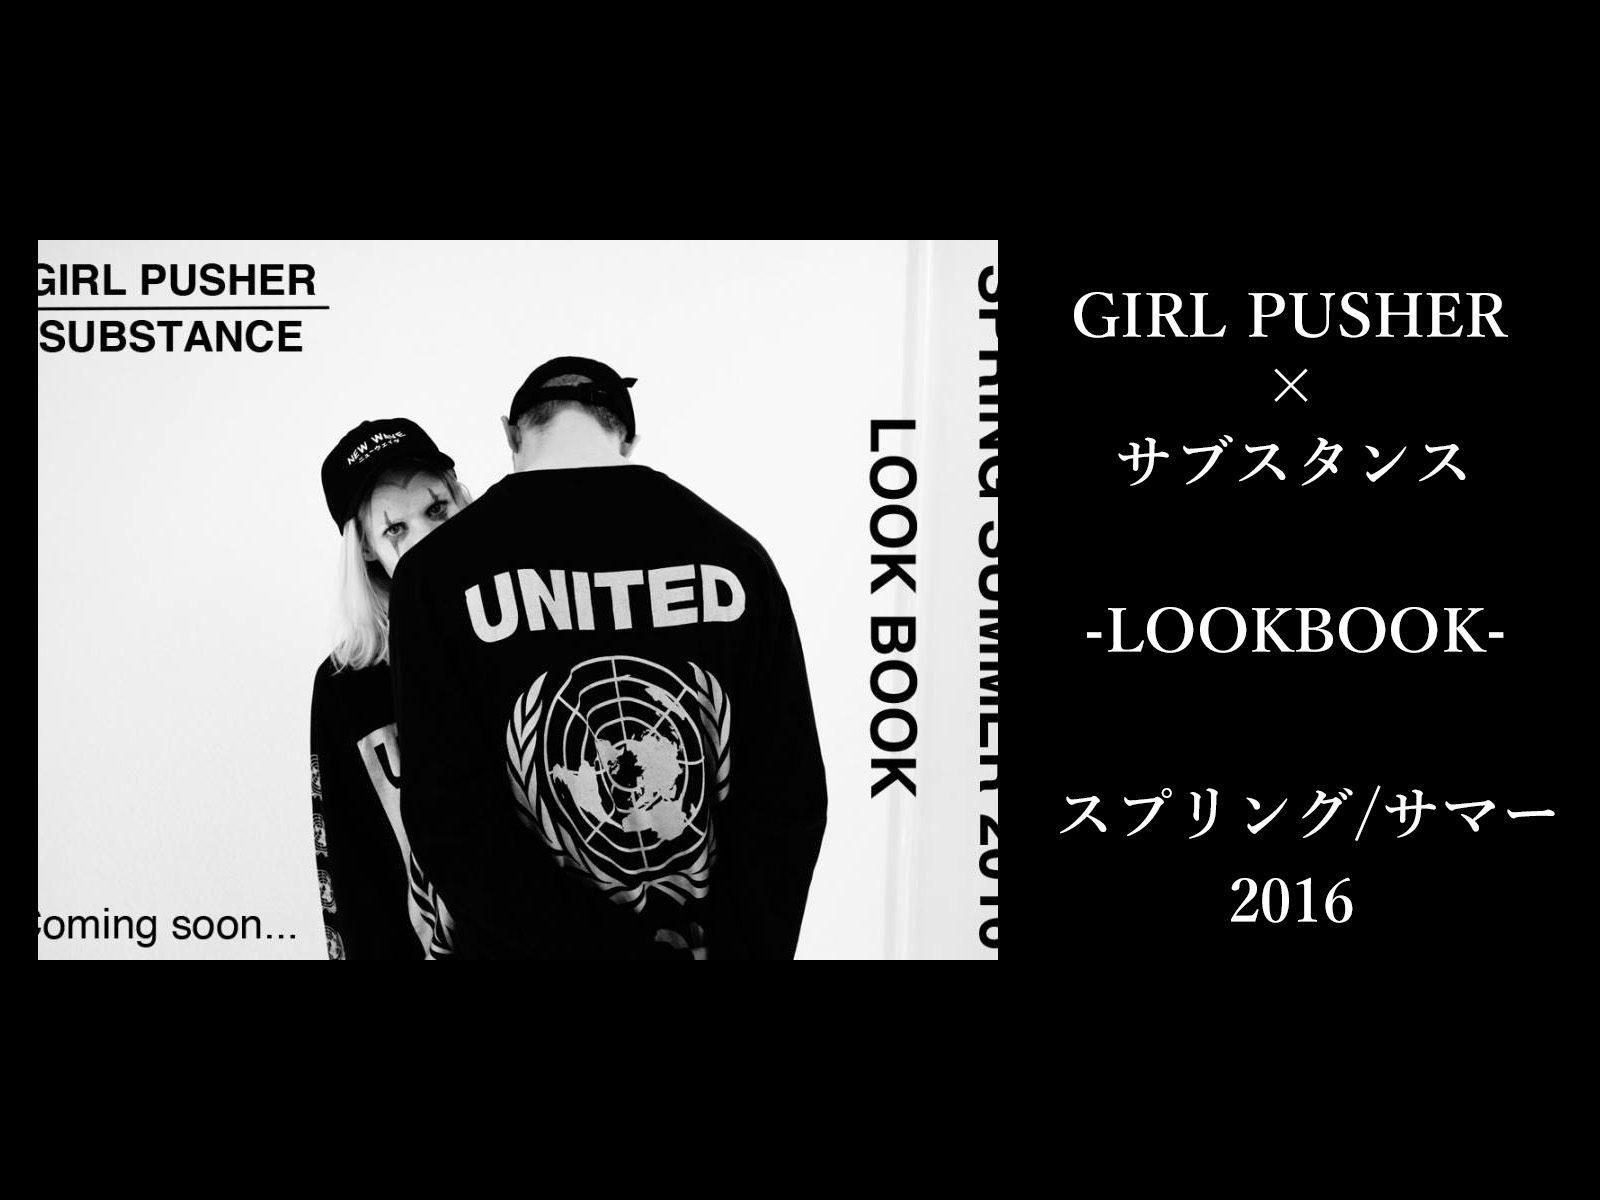 GIRL PUSHER × SUBSTANCE – LOOKBOOK S/S 2016